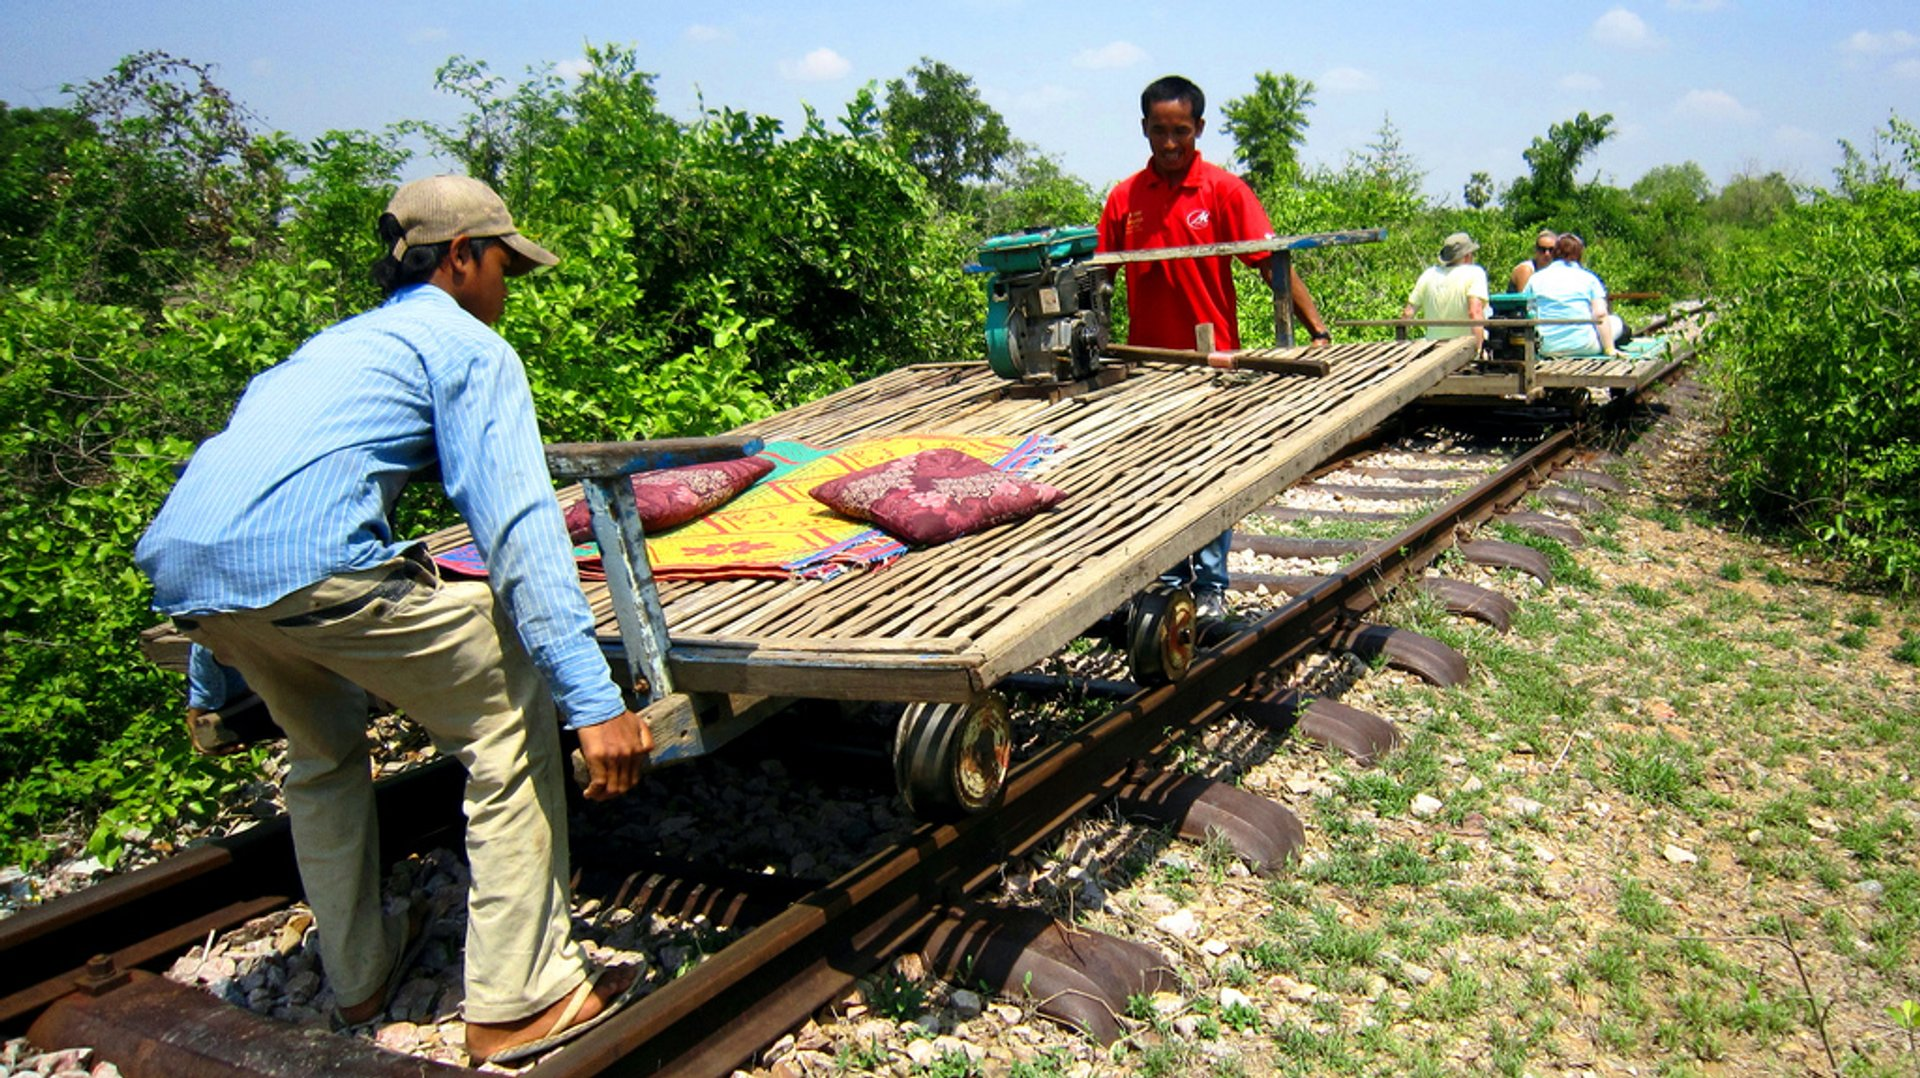 Bamboo Train or Norry in Cambodia - Best Time